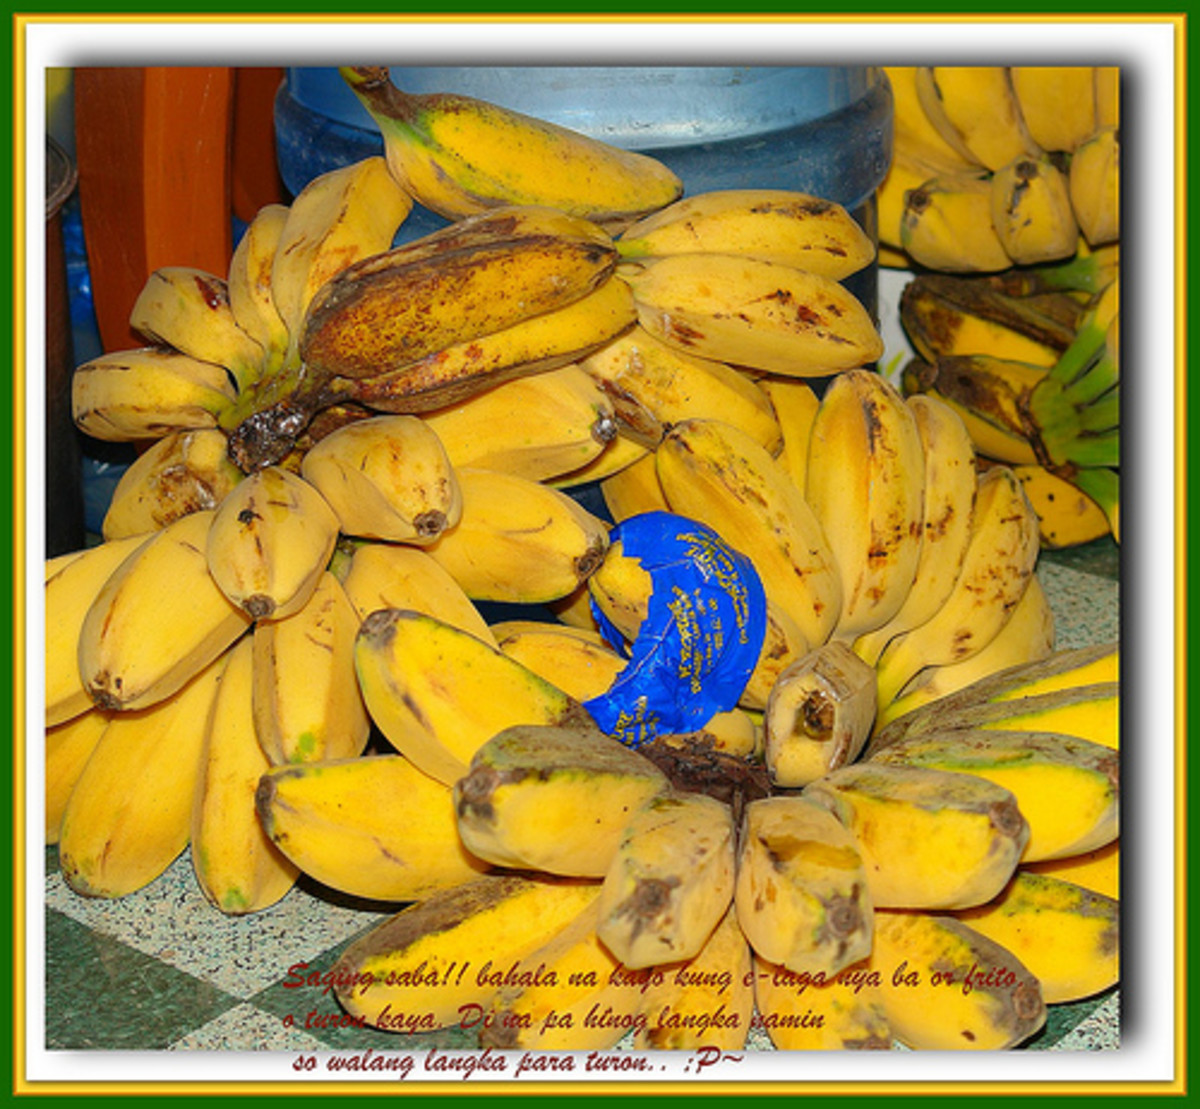 Ripe Plantain Bananas (Photo courtesy by sassy40's Signed-off! from Flickr)